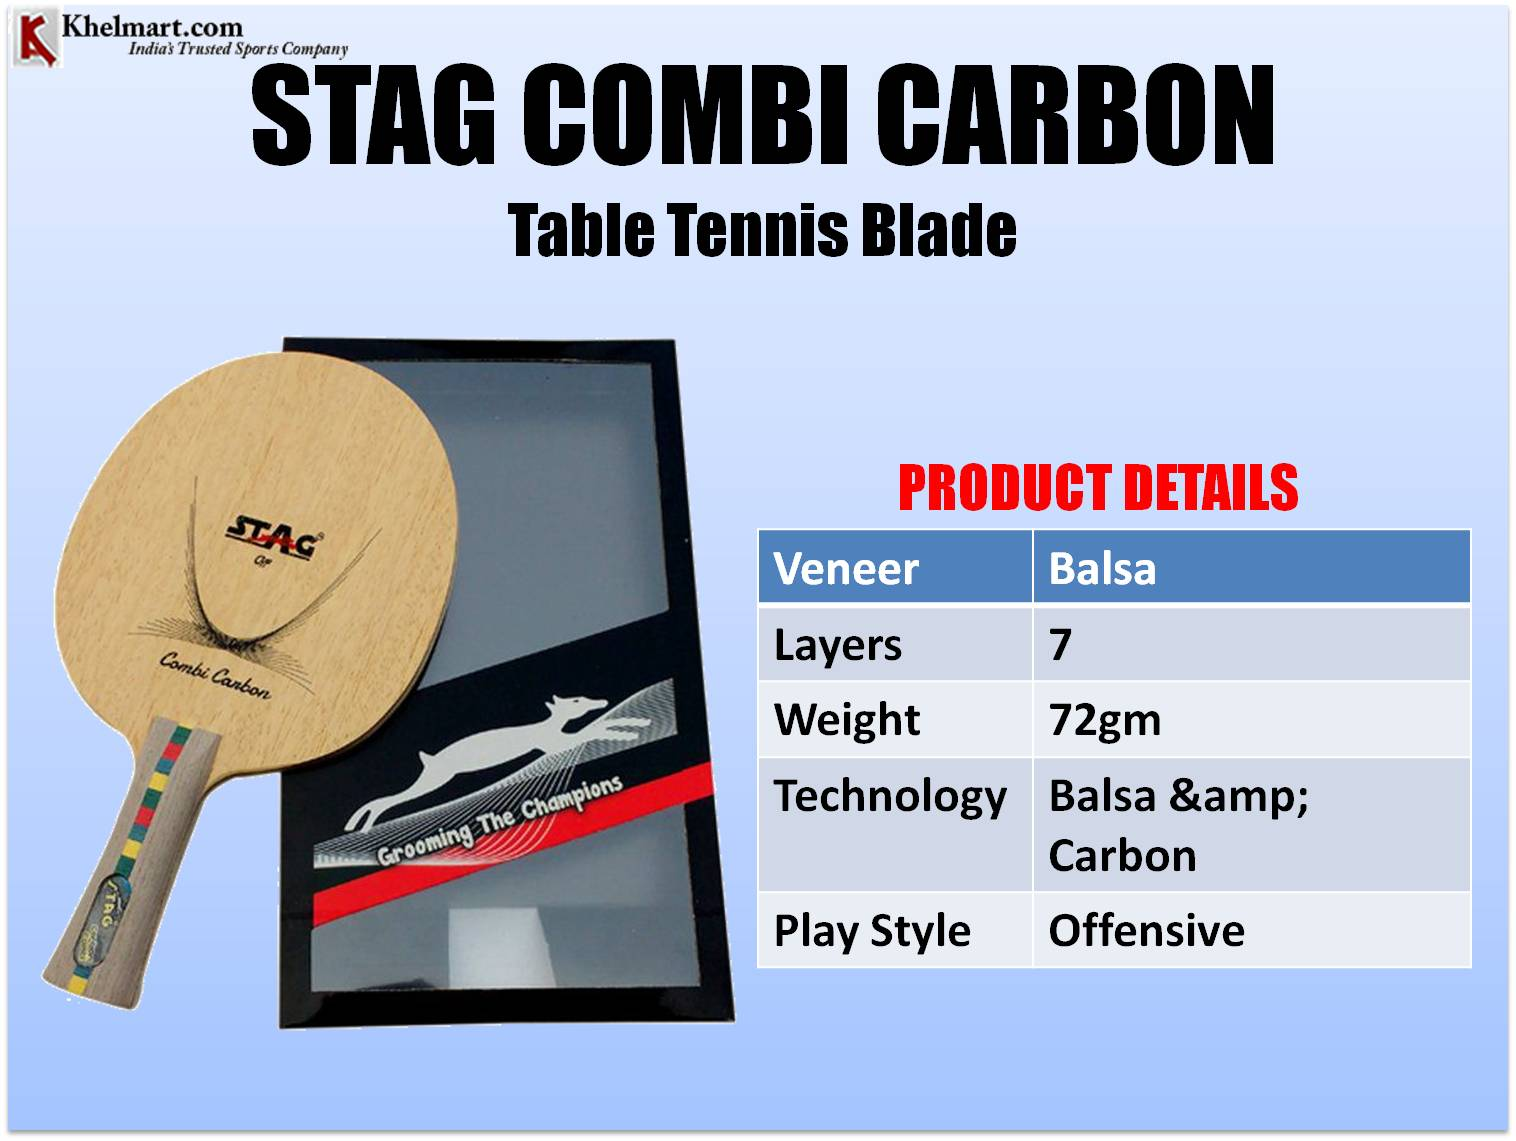 STAG_COMBI_CARBON_Table_Tennis_Blade.jpg